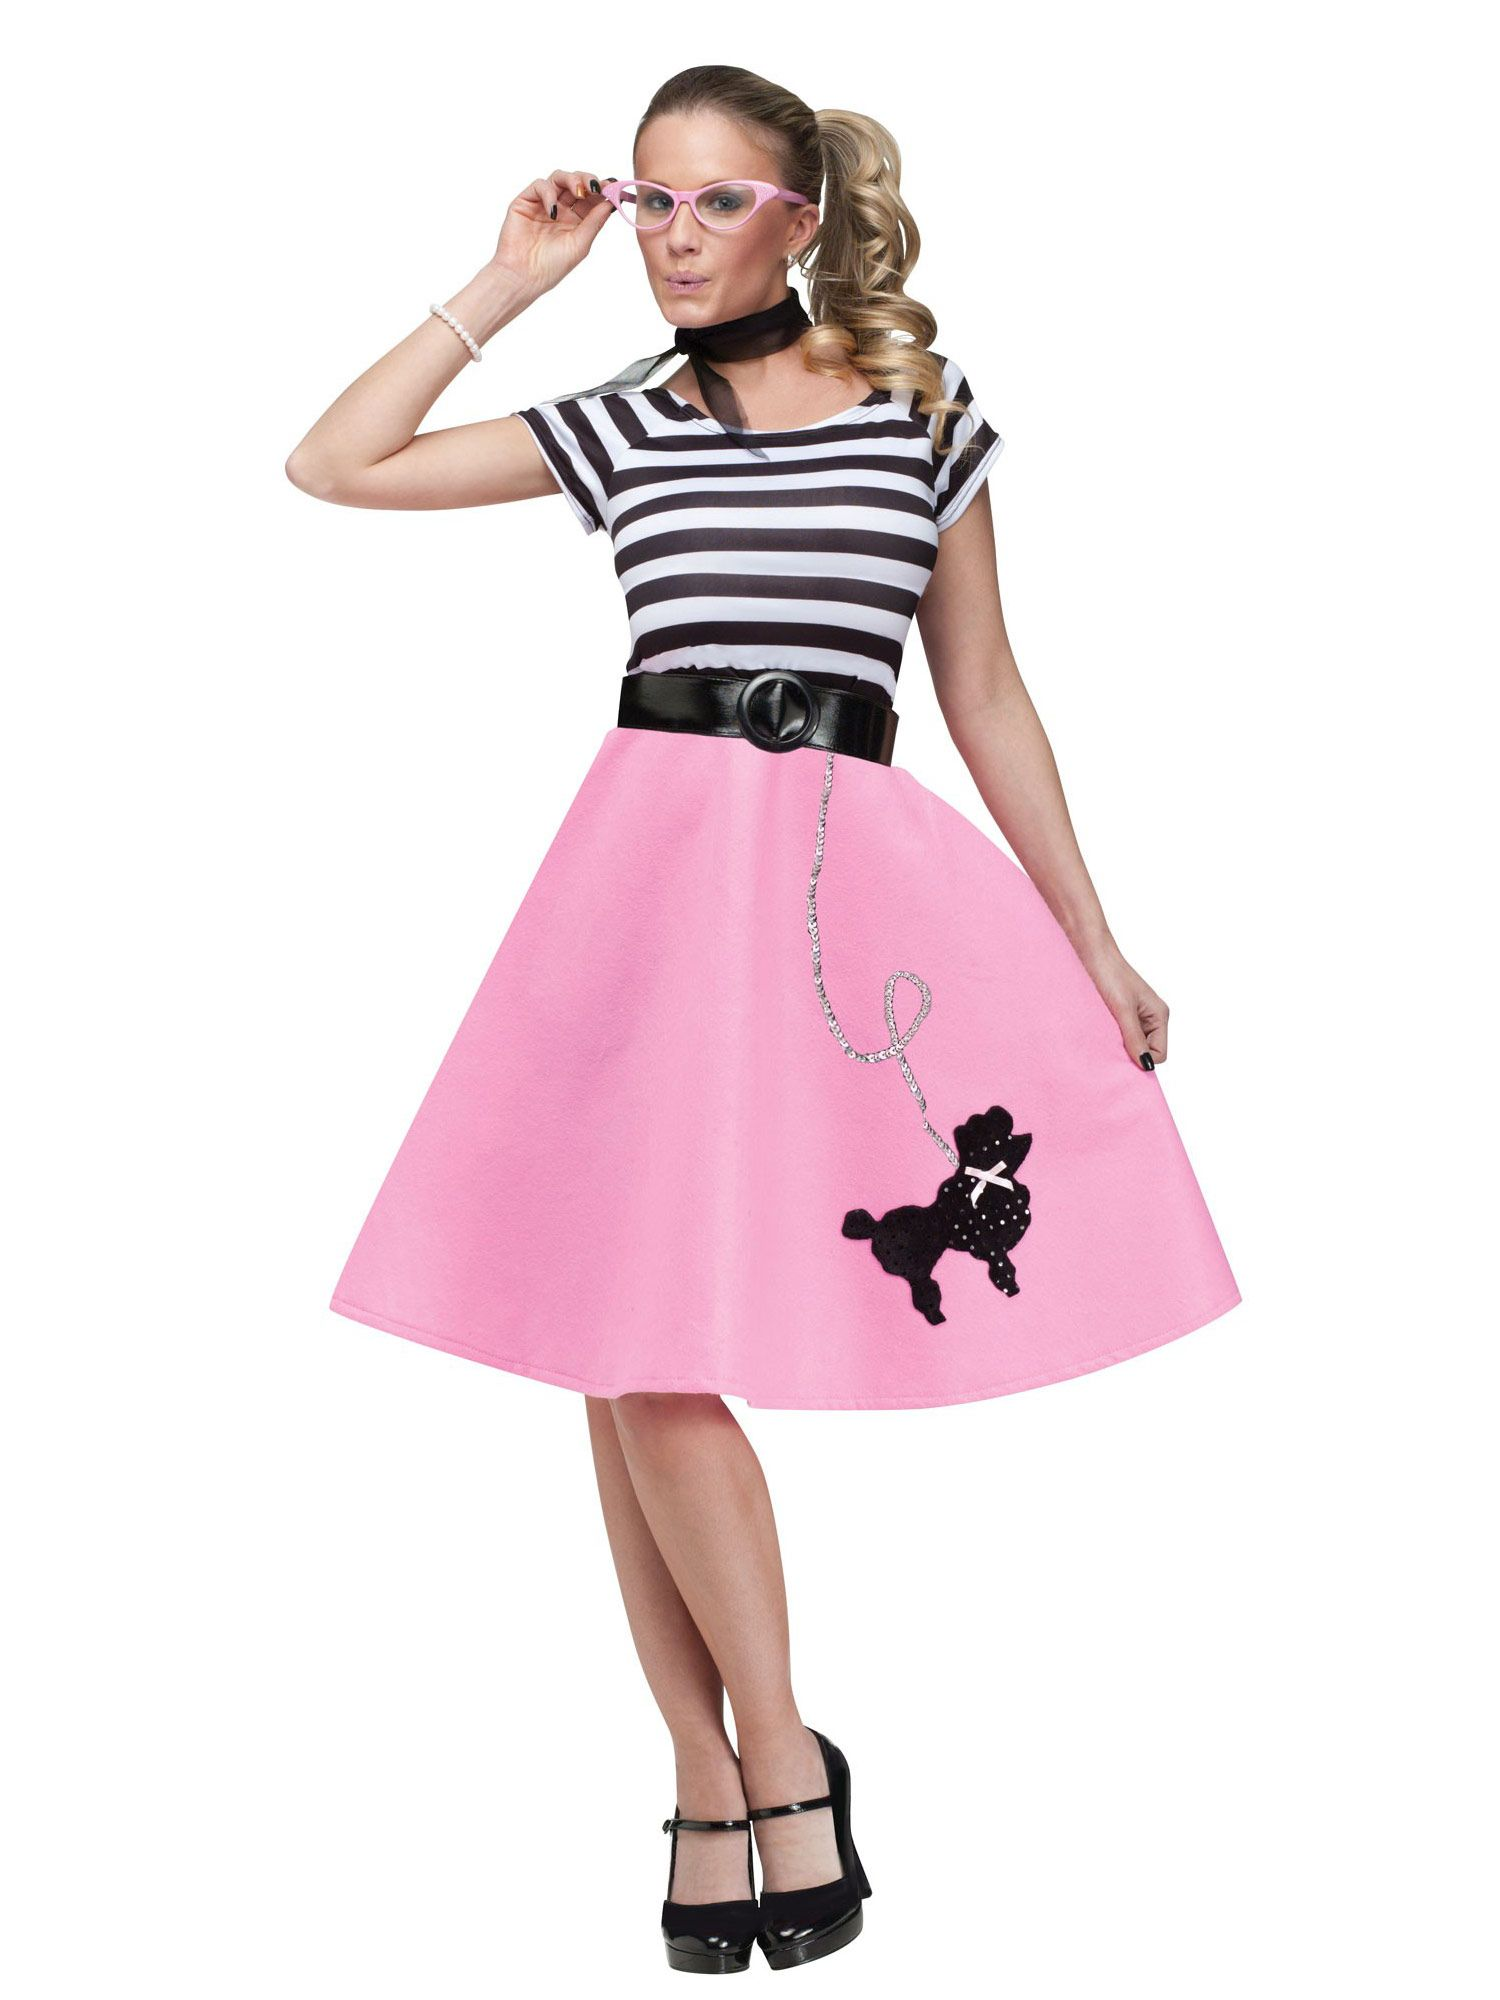 Charades Costumes Poodle Dress Costume